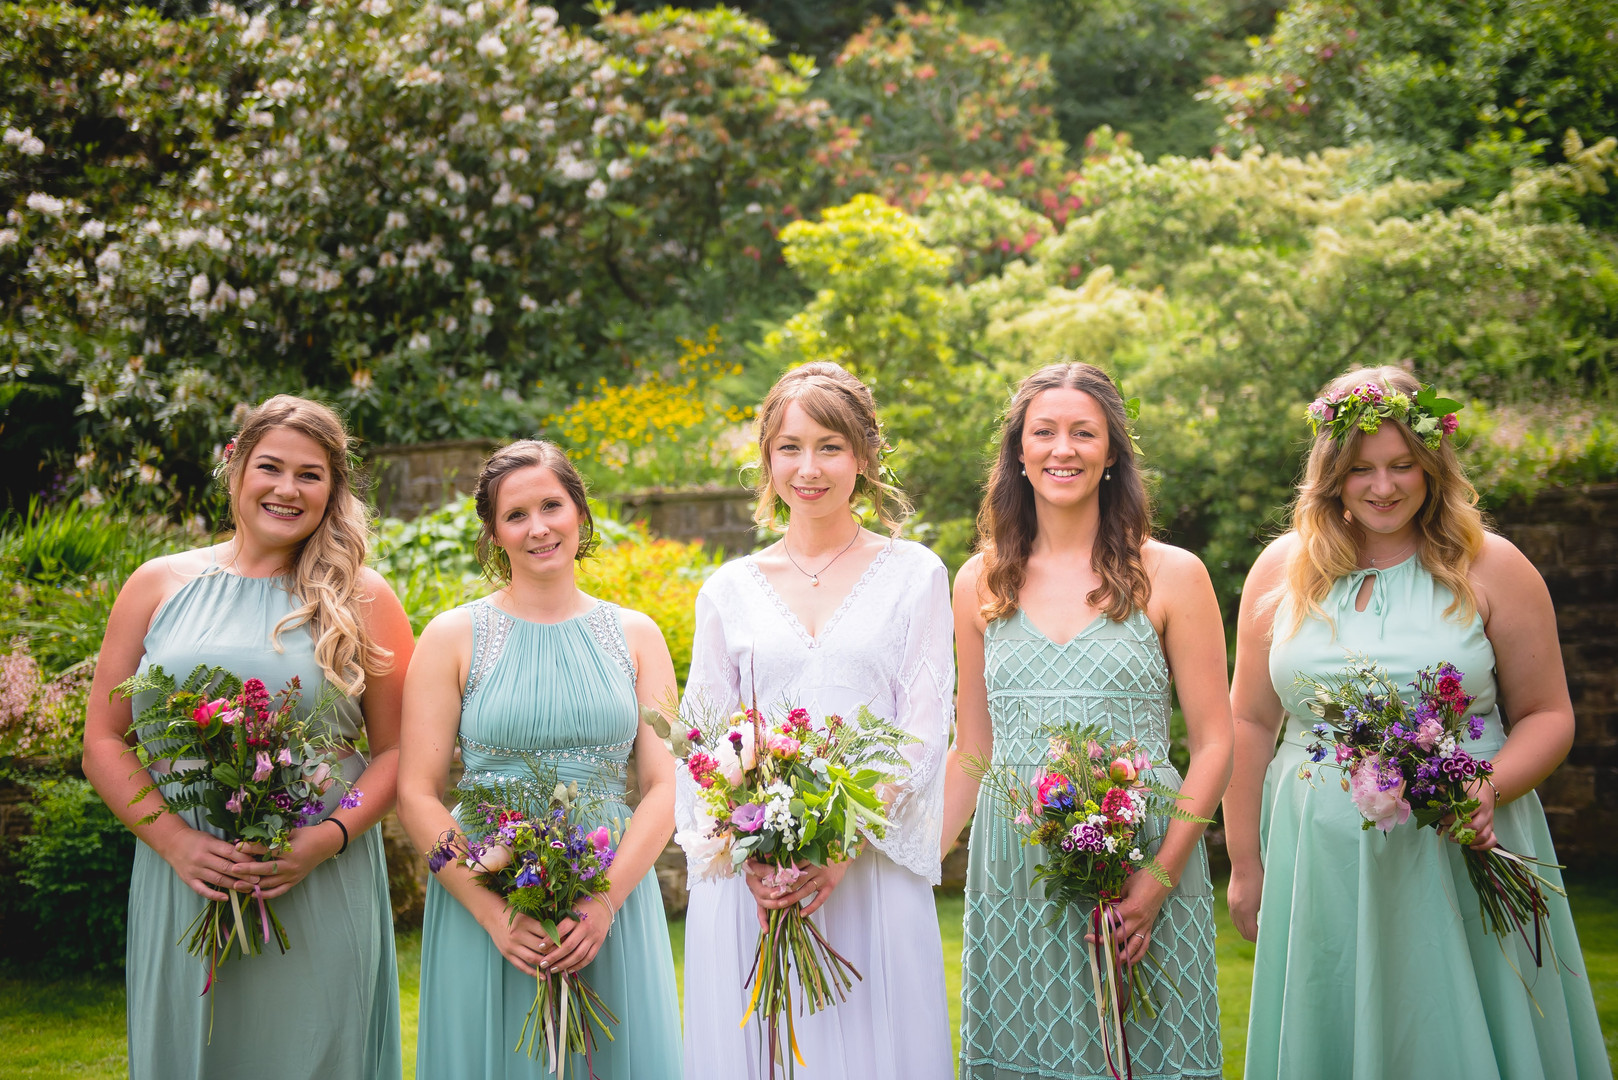 Handtied bridal and bridesmaids bouquets using locally grown flowers by Hollow Meadows Flowers, Sheffield and the Peak District. Photo - Kate Cooper Photography